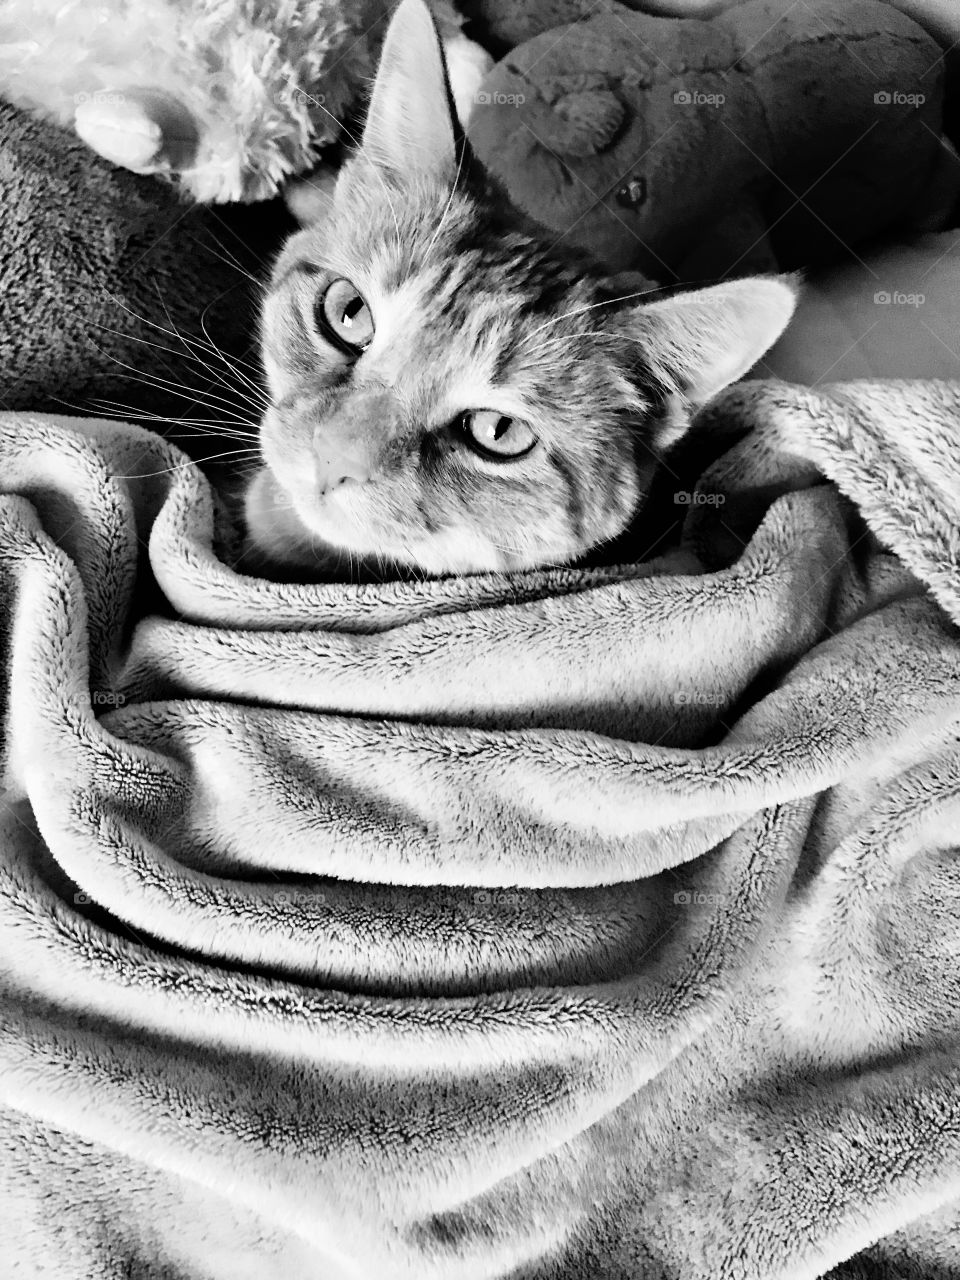 Darling black and white photo of orange tabby cat all cuddled up in comfy blanket!